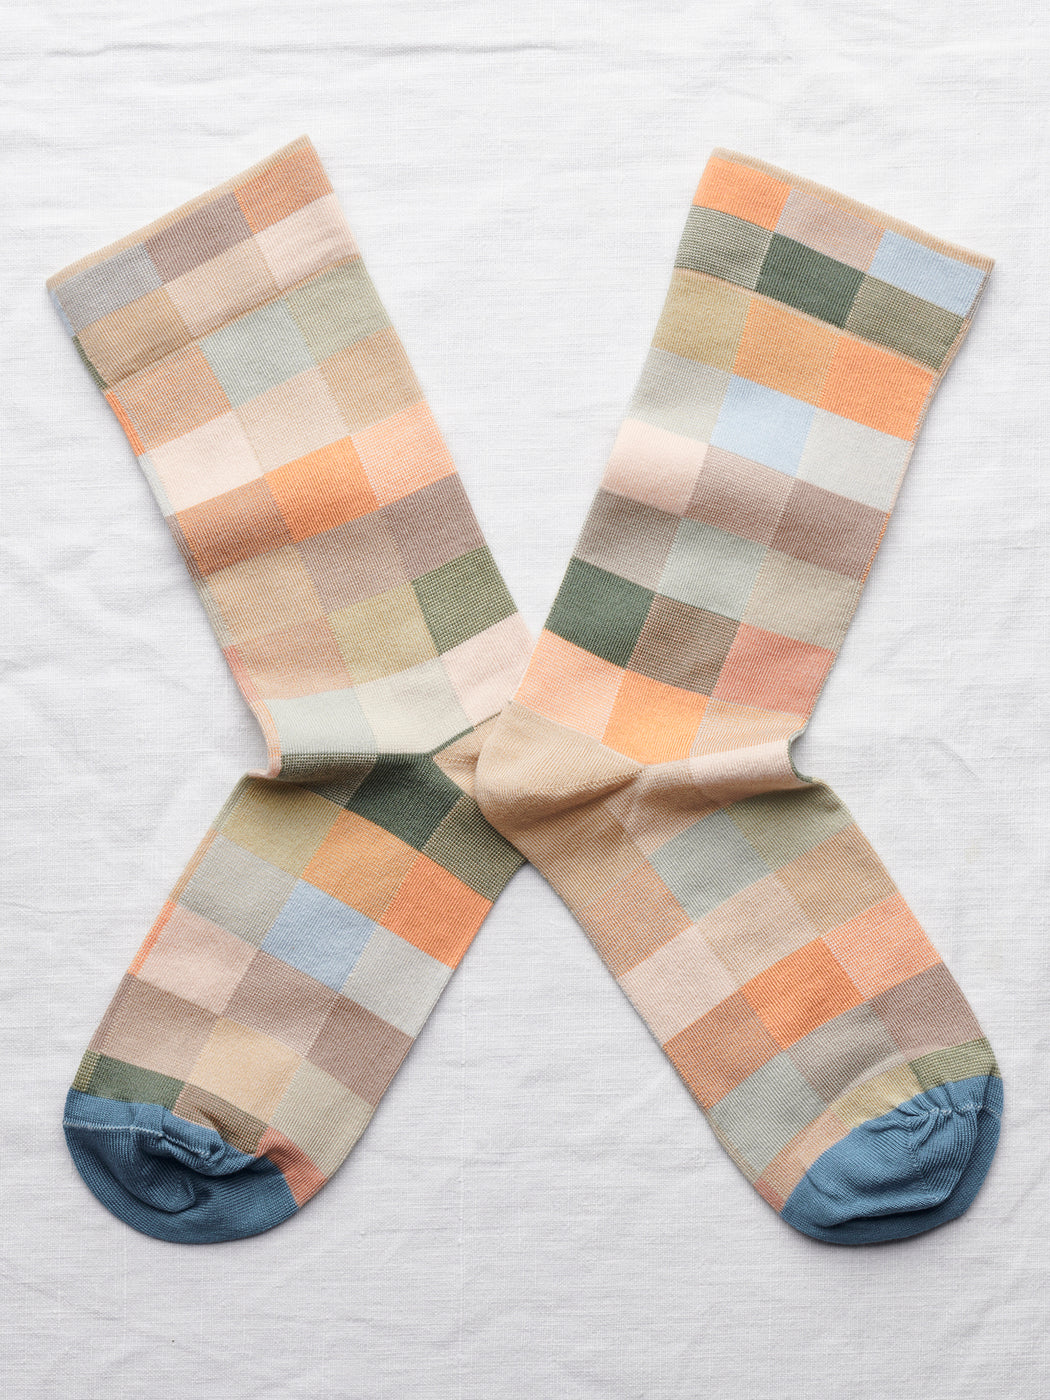 Multi-coloured Pastel Socks from Bonne Maison | Lifestyle curated by Wolf & Moon